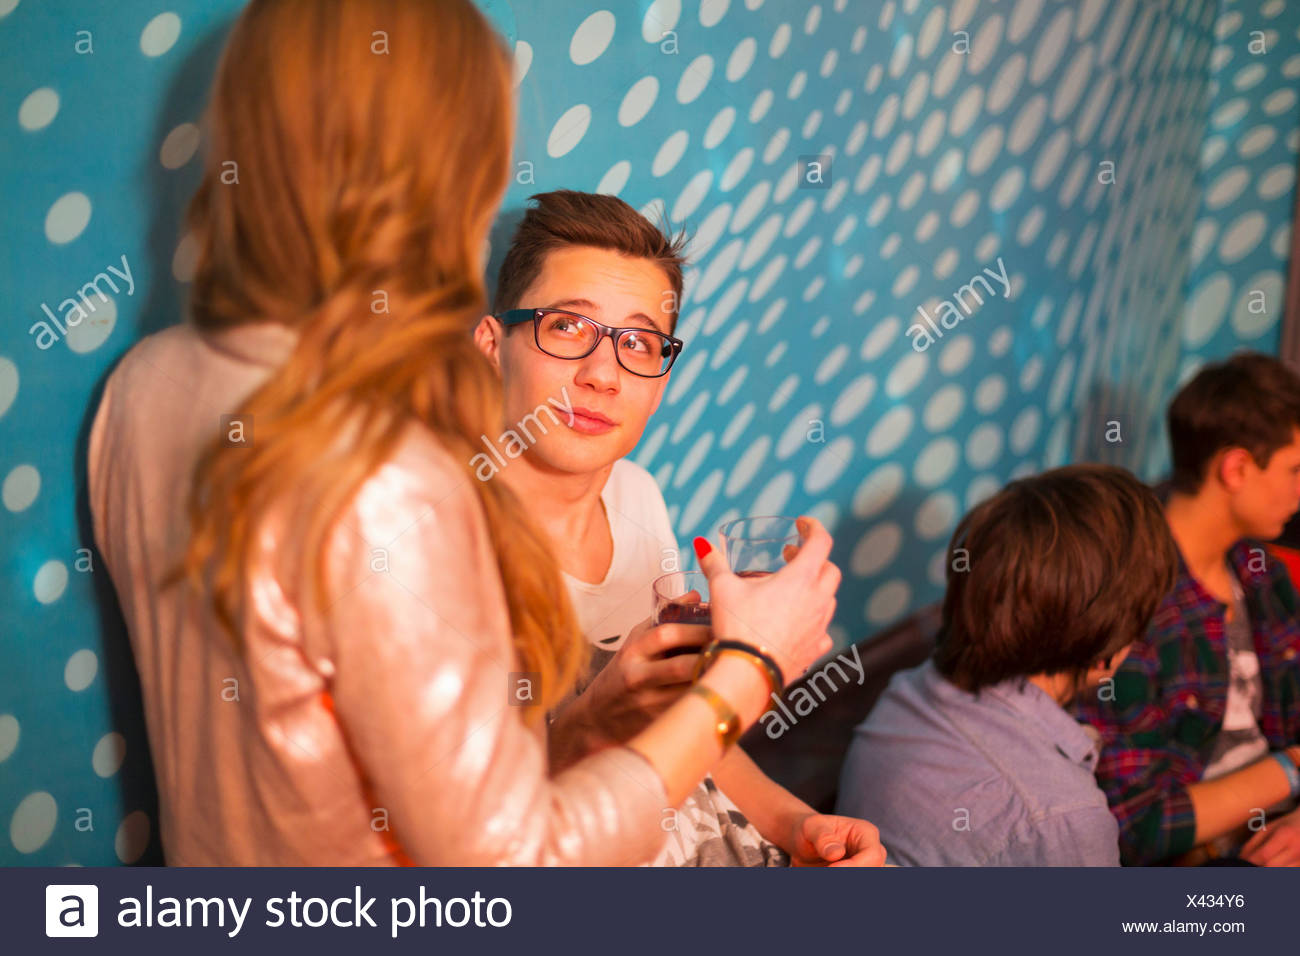 Teenage boy looking up at teenage girl, friends in background - Stock Image